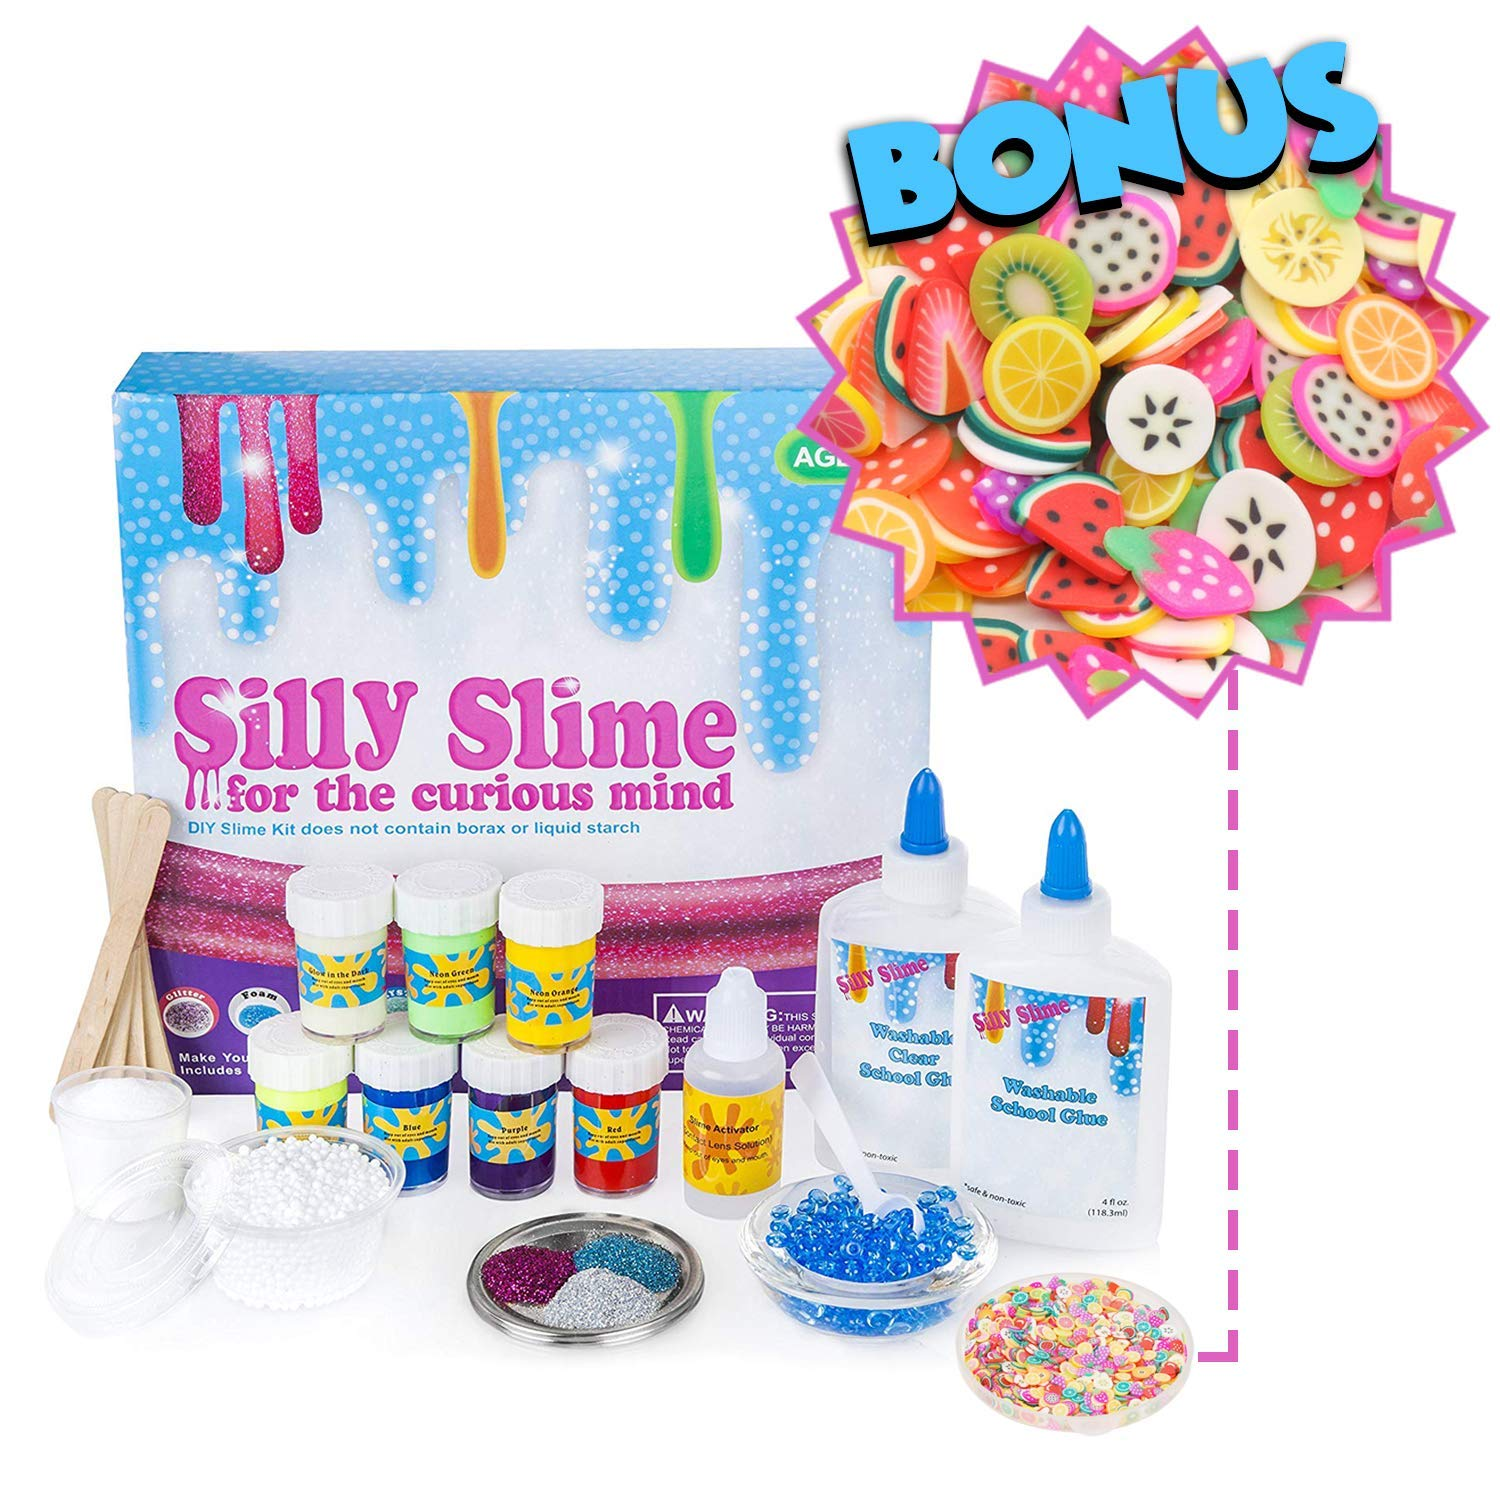 How to make crunchy slime with home ingredients